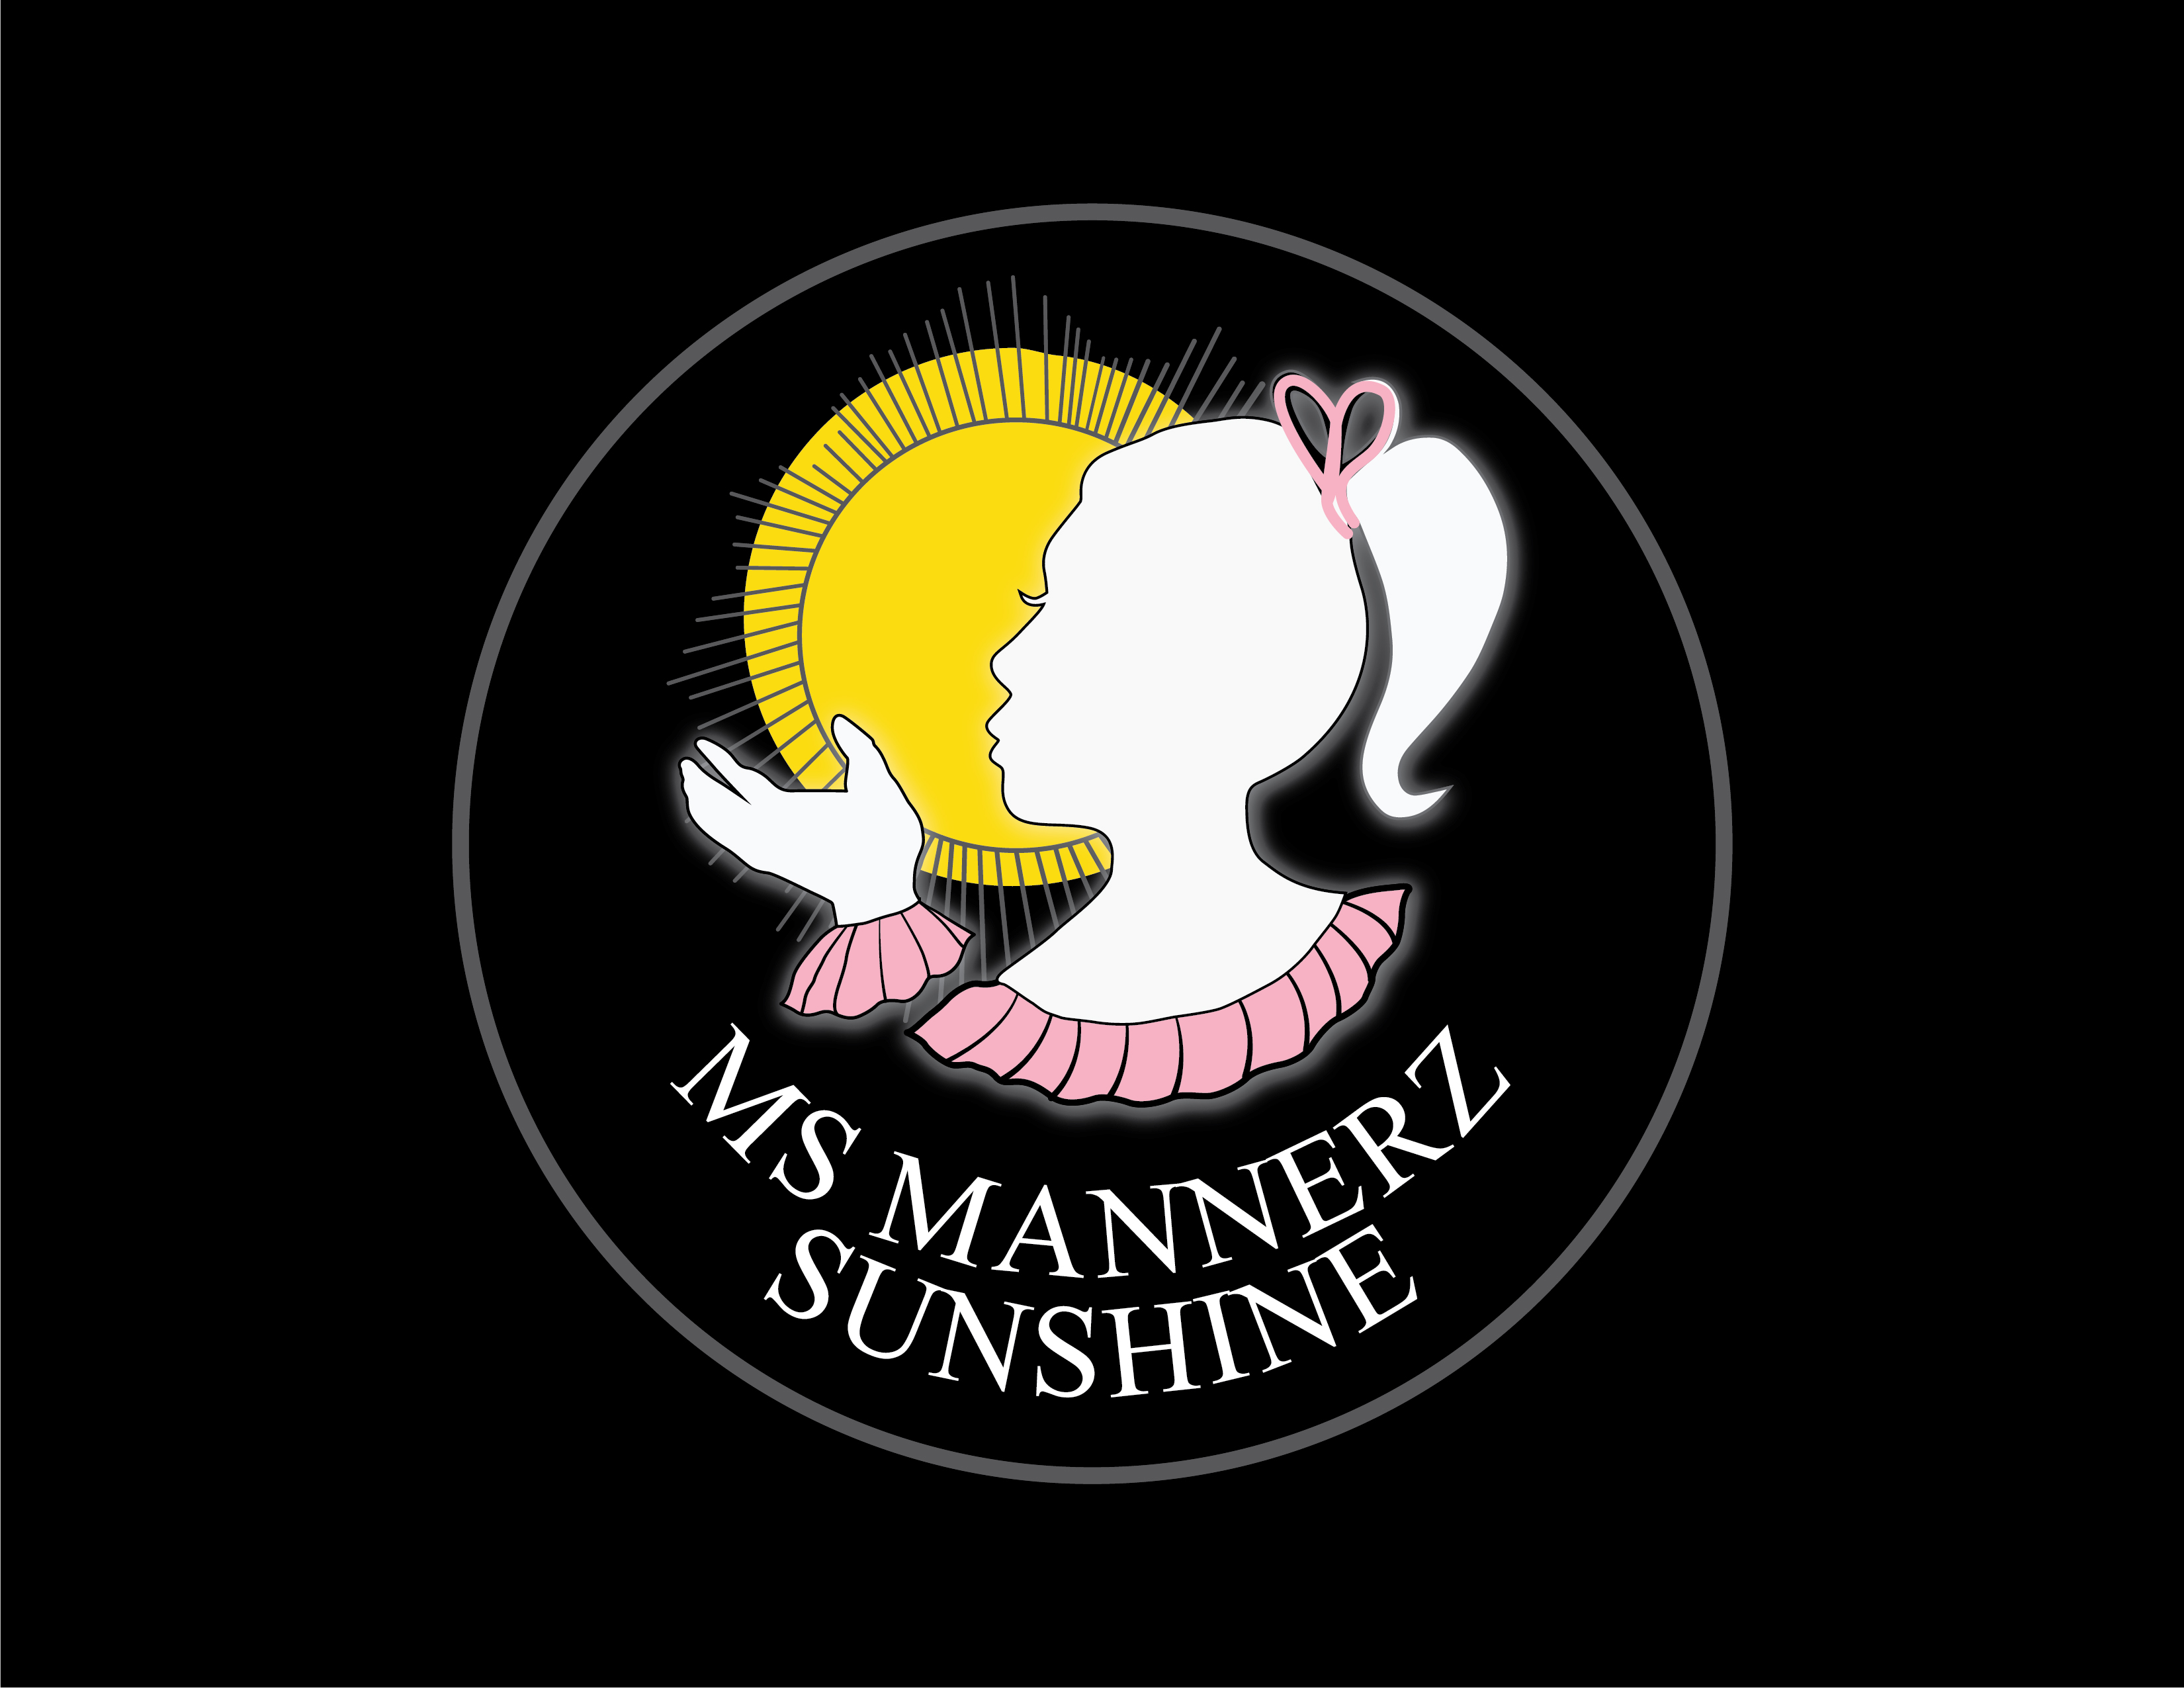 Ms Mannerz Sunshine Products